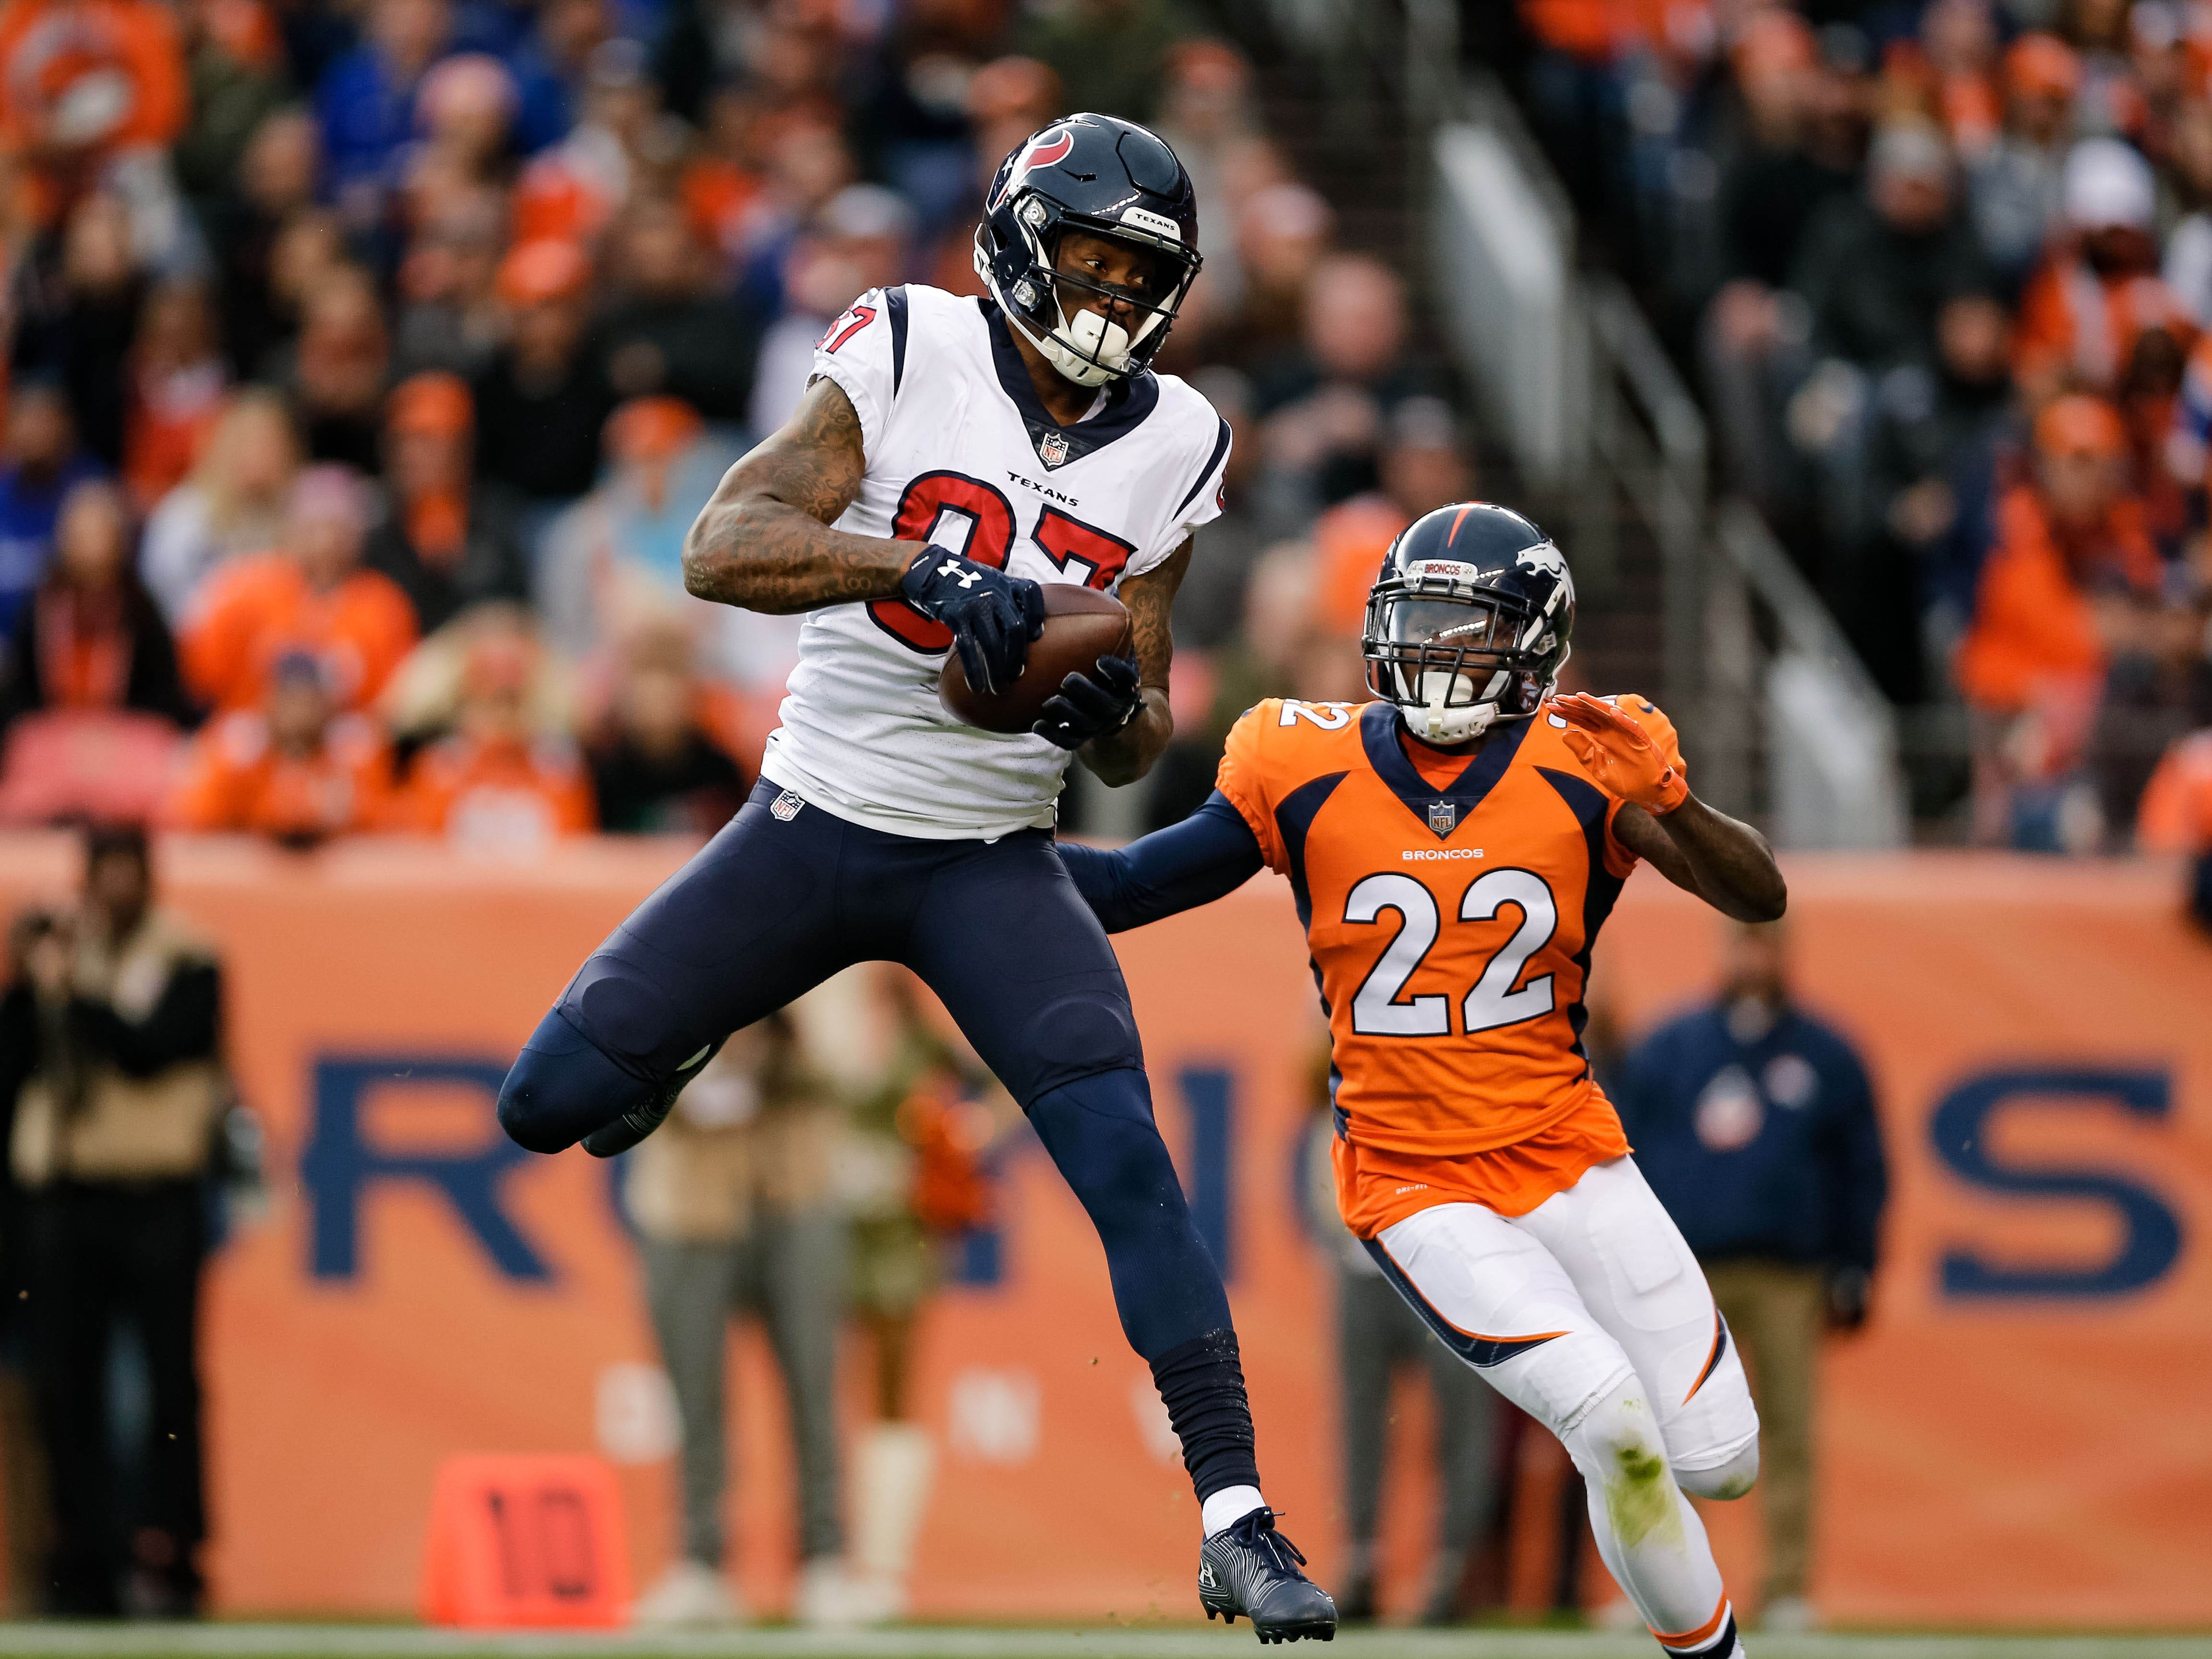 Houston Texans wide receiver Demaryius Thomas (87) makes a catch against Denver Broncos cornerback Tramaine Brock (22) in the first quarter at Broncos Stadium at Mile High.